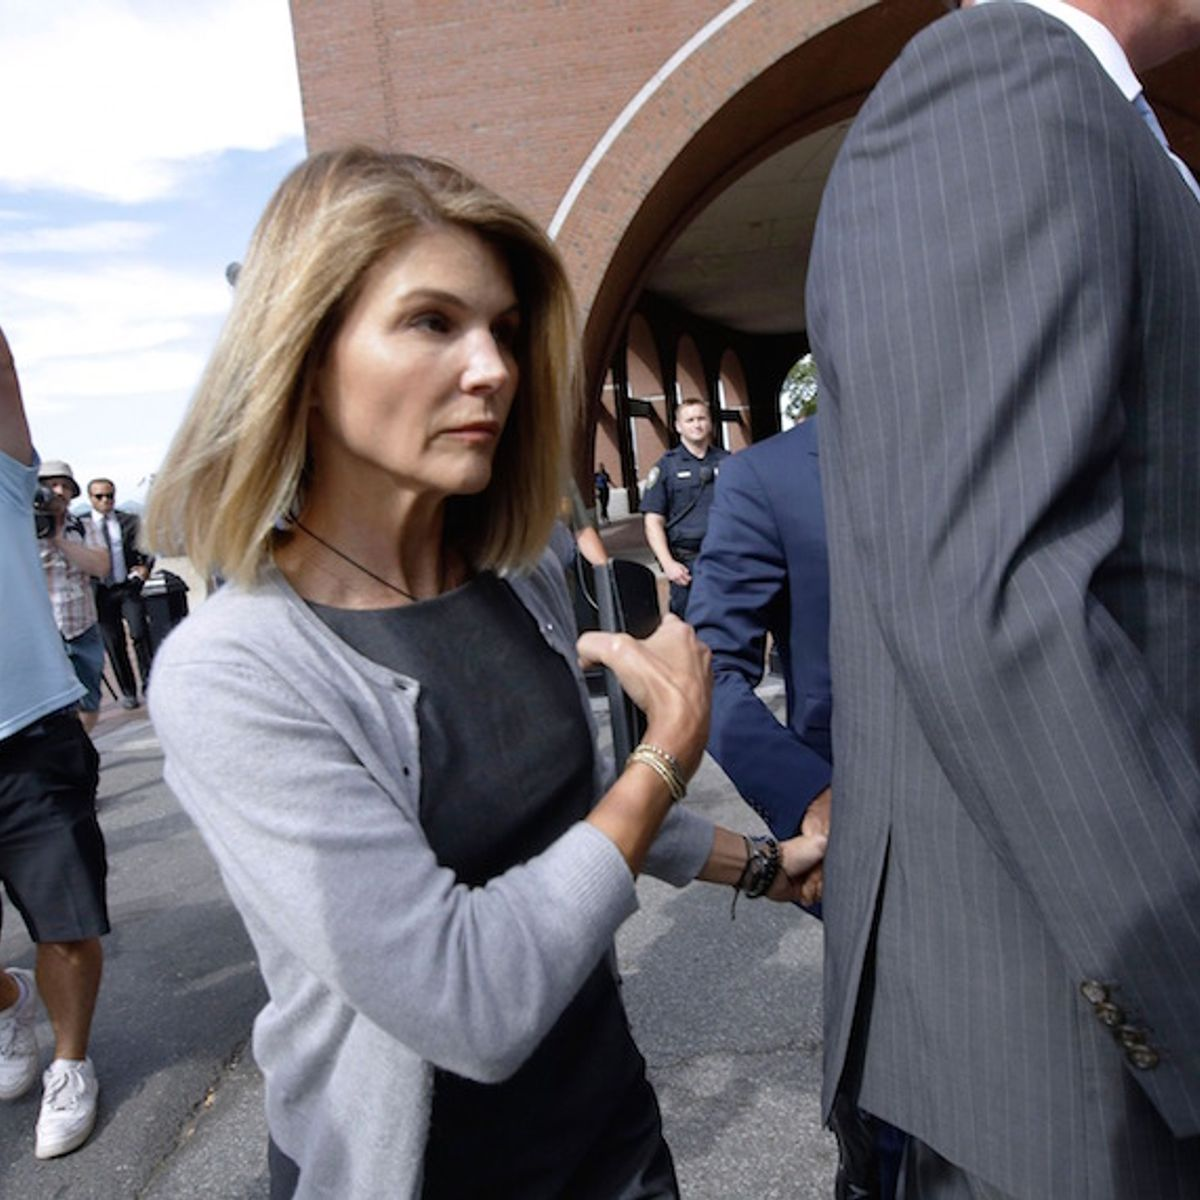 Lori Loughlin faces new bribery charges in college admissions scandal